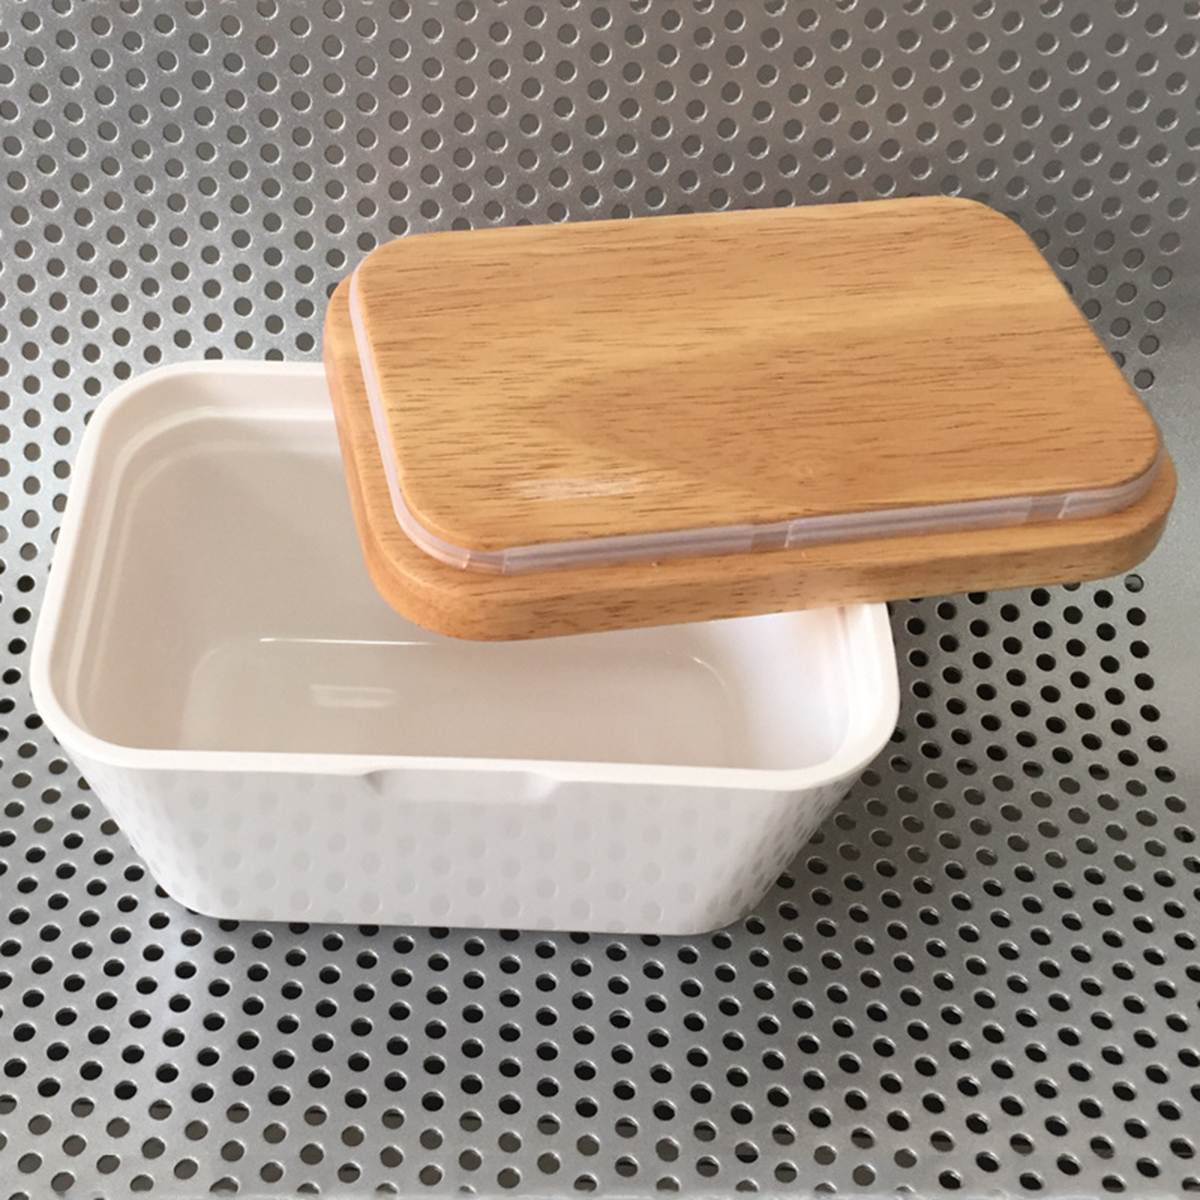 Cheese Butter Box Dish with Lid 250/500ml Storage Holder Container Hotel Kitchen Tools Dinnerware Wood Melamine Serving Box-in Dishes u0026 Plates from Home ... & Cheese Butter Box Dish with Lid 250/500ml Storage Holder Container ...